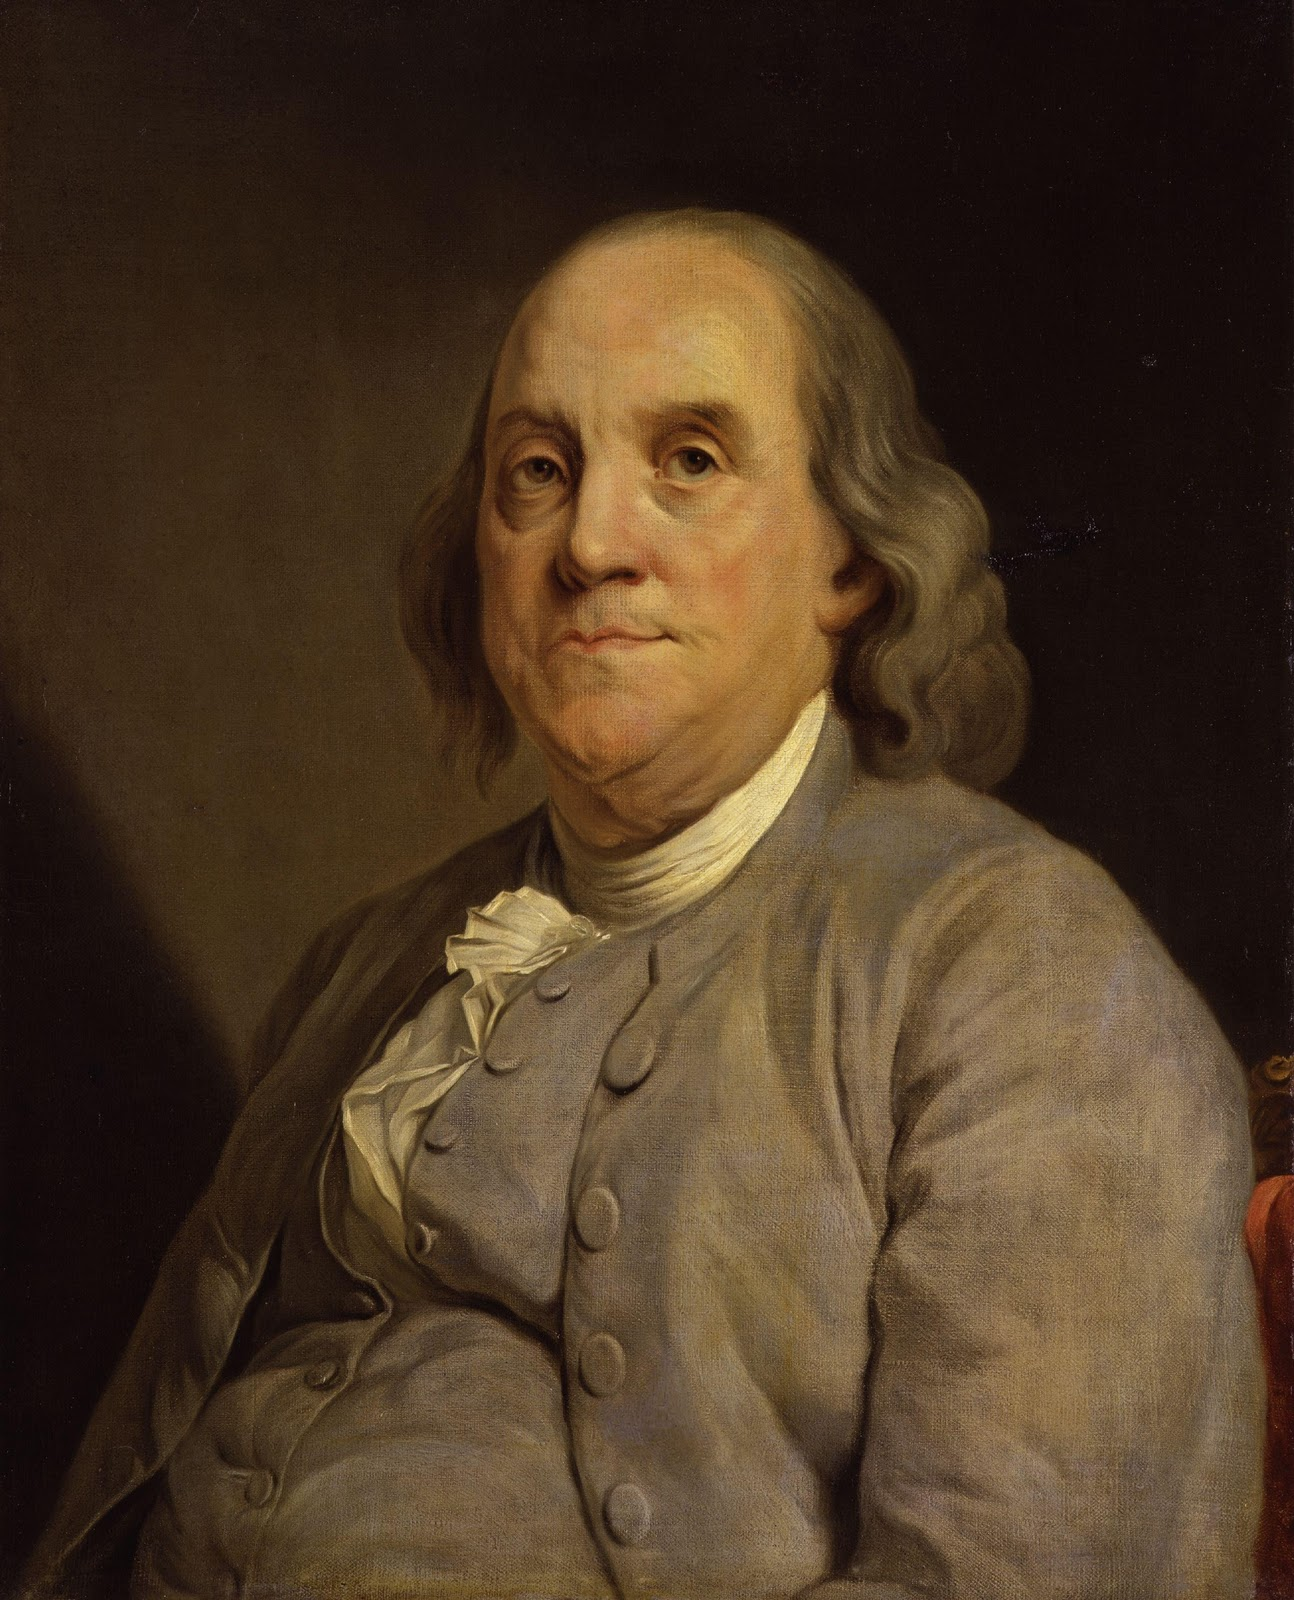 Ben franklin the linguist | Blog | Live Lingua